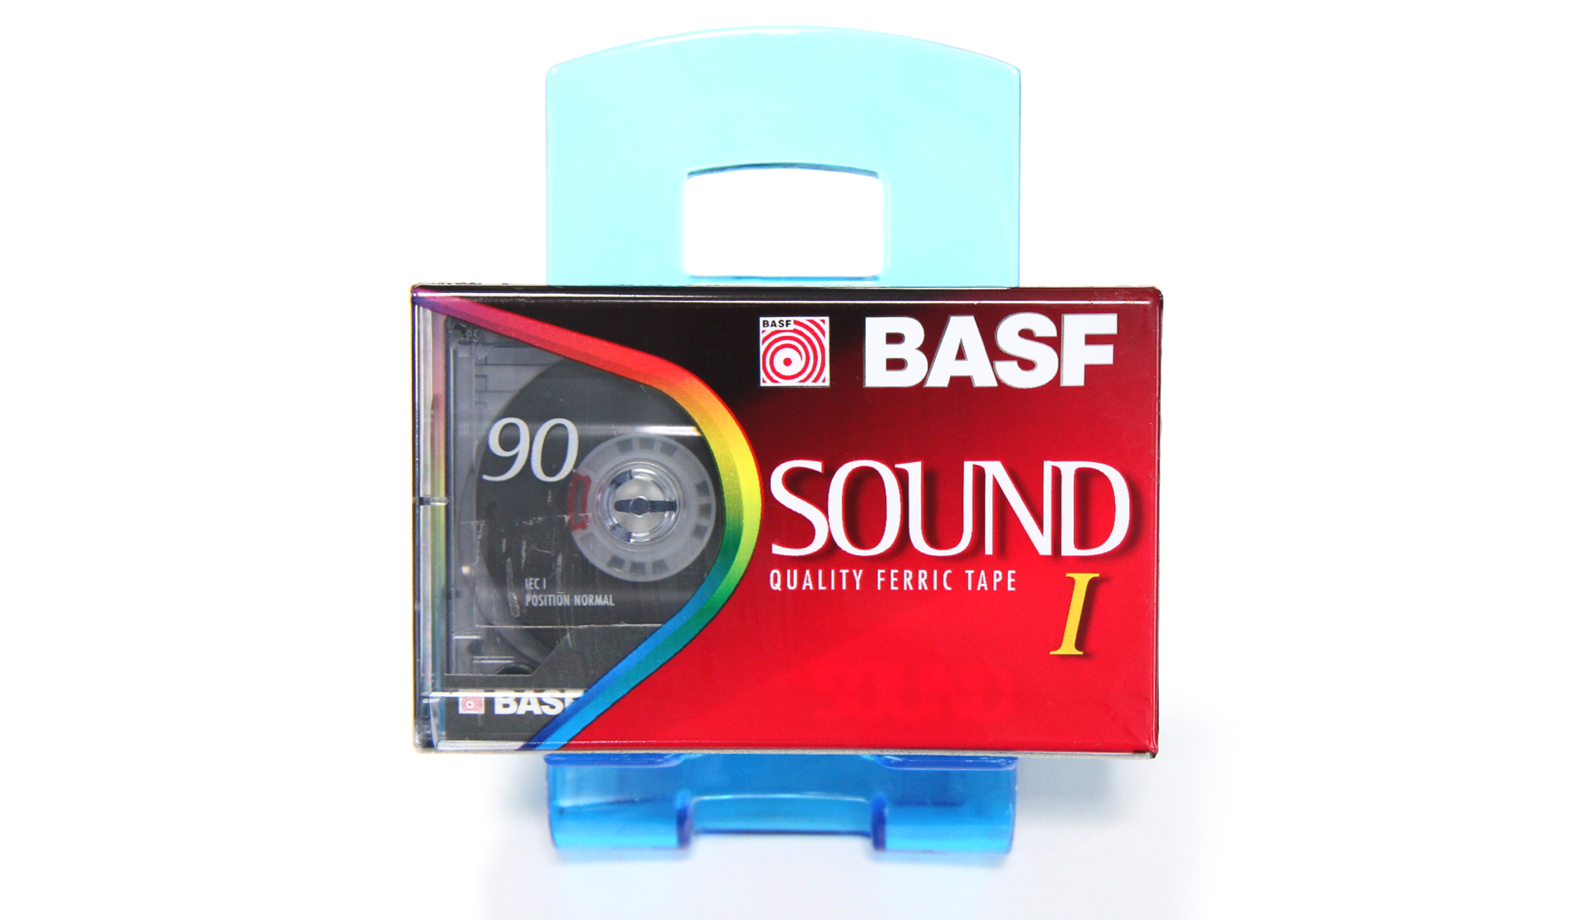 BASF SOUND-I90 Position Normal